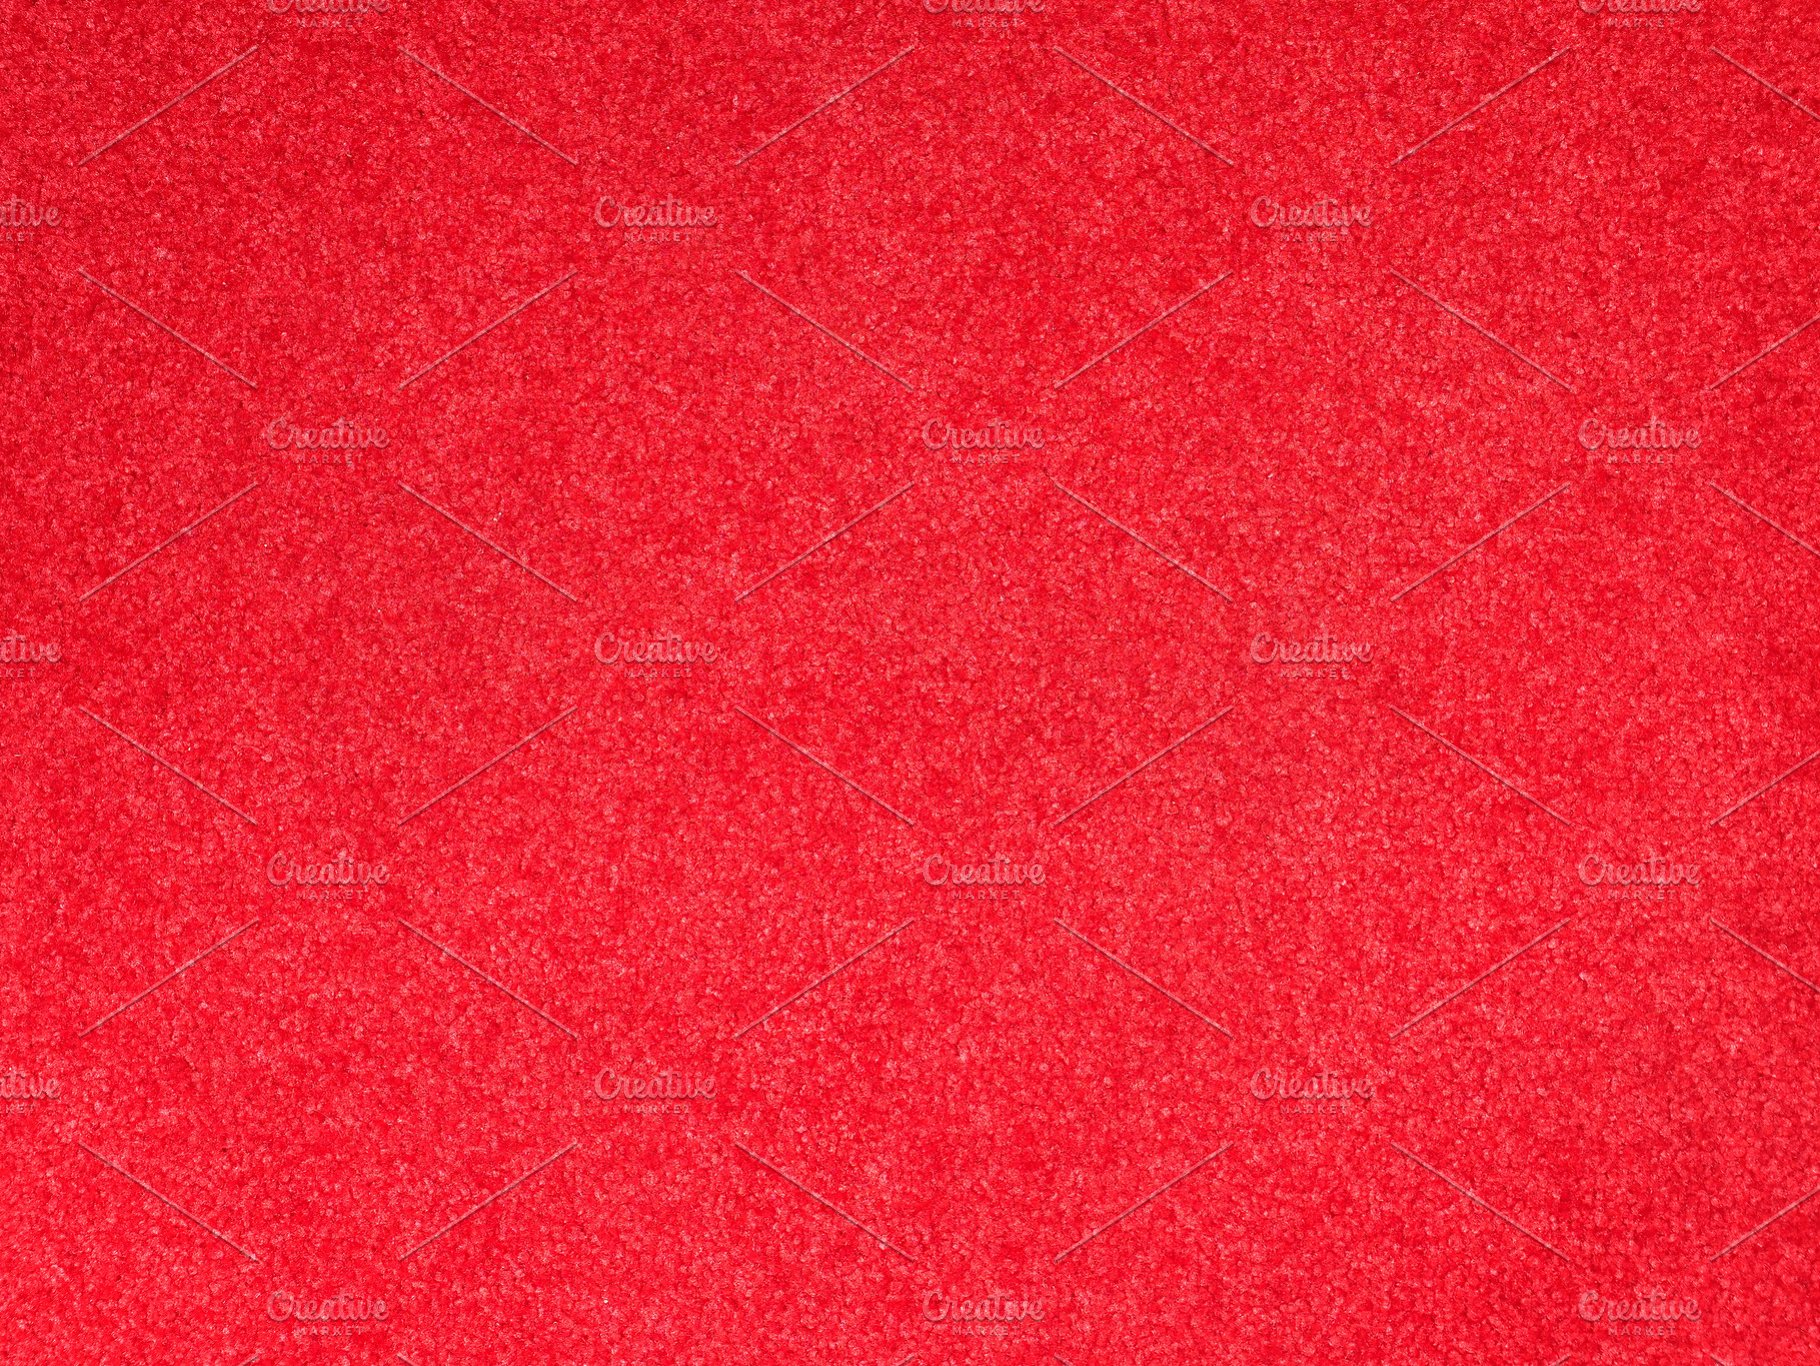 red carpet texture background | High-Quality Stock Photos ...